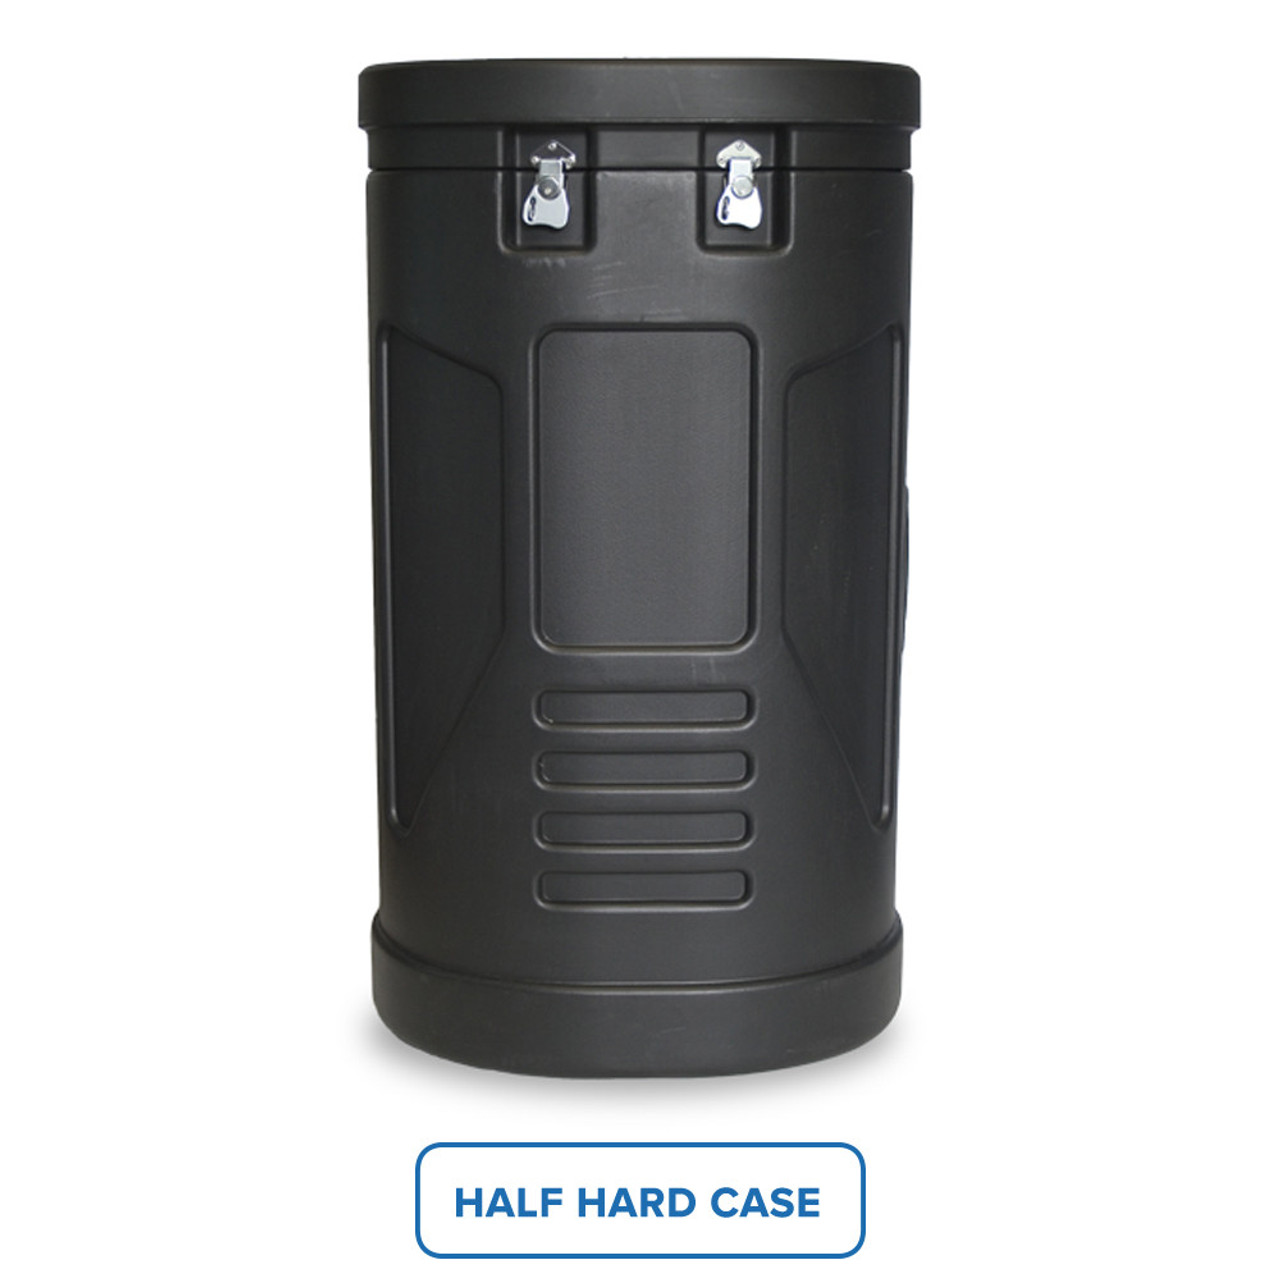 Medium Hard Case